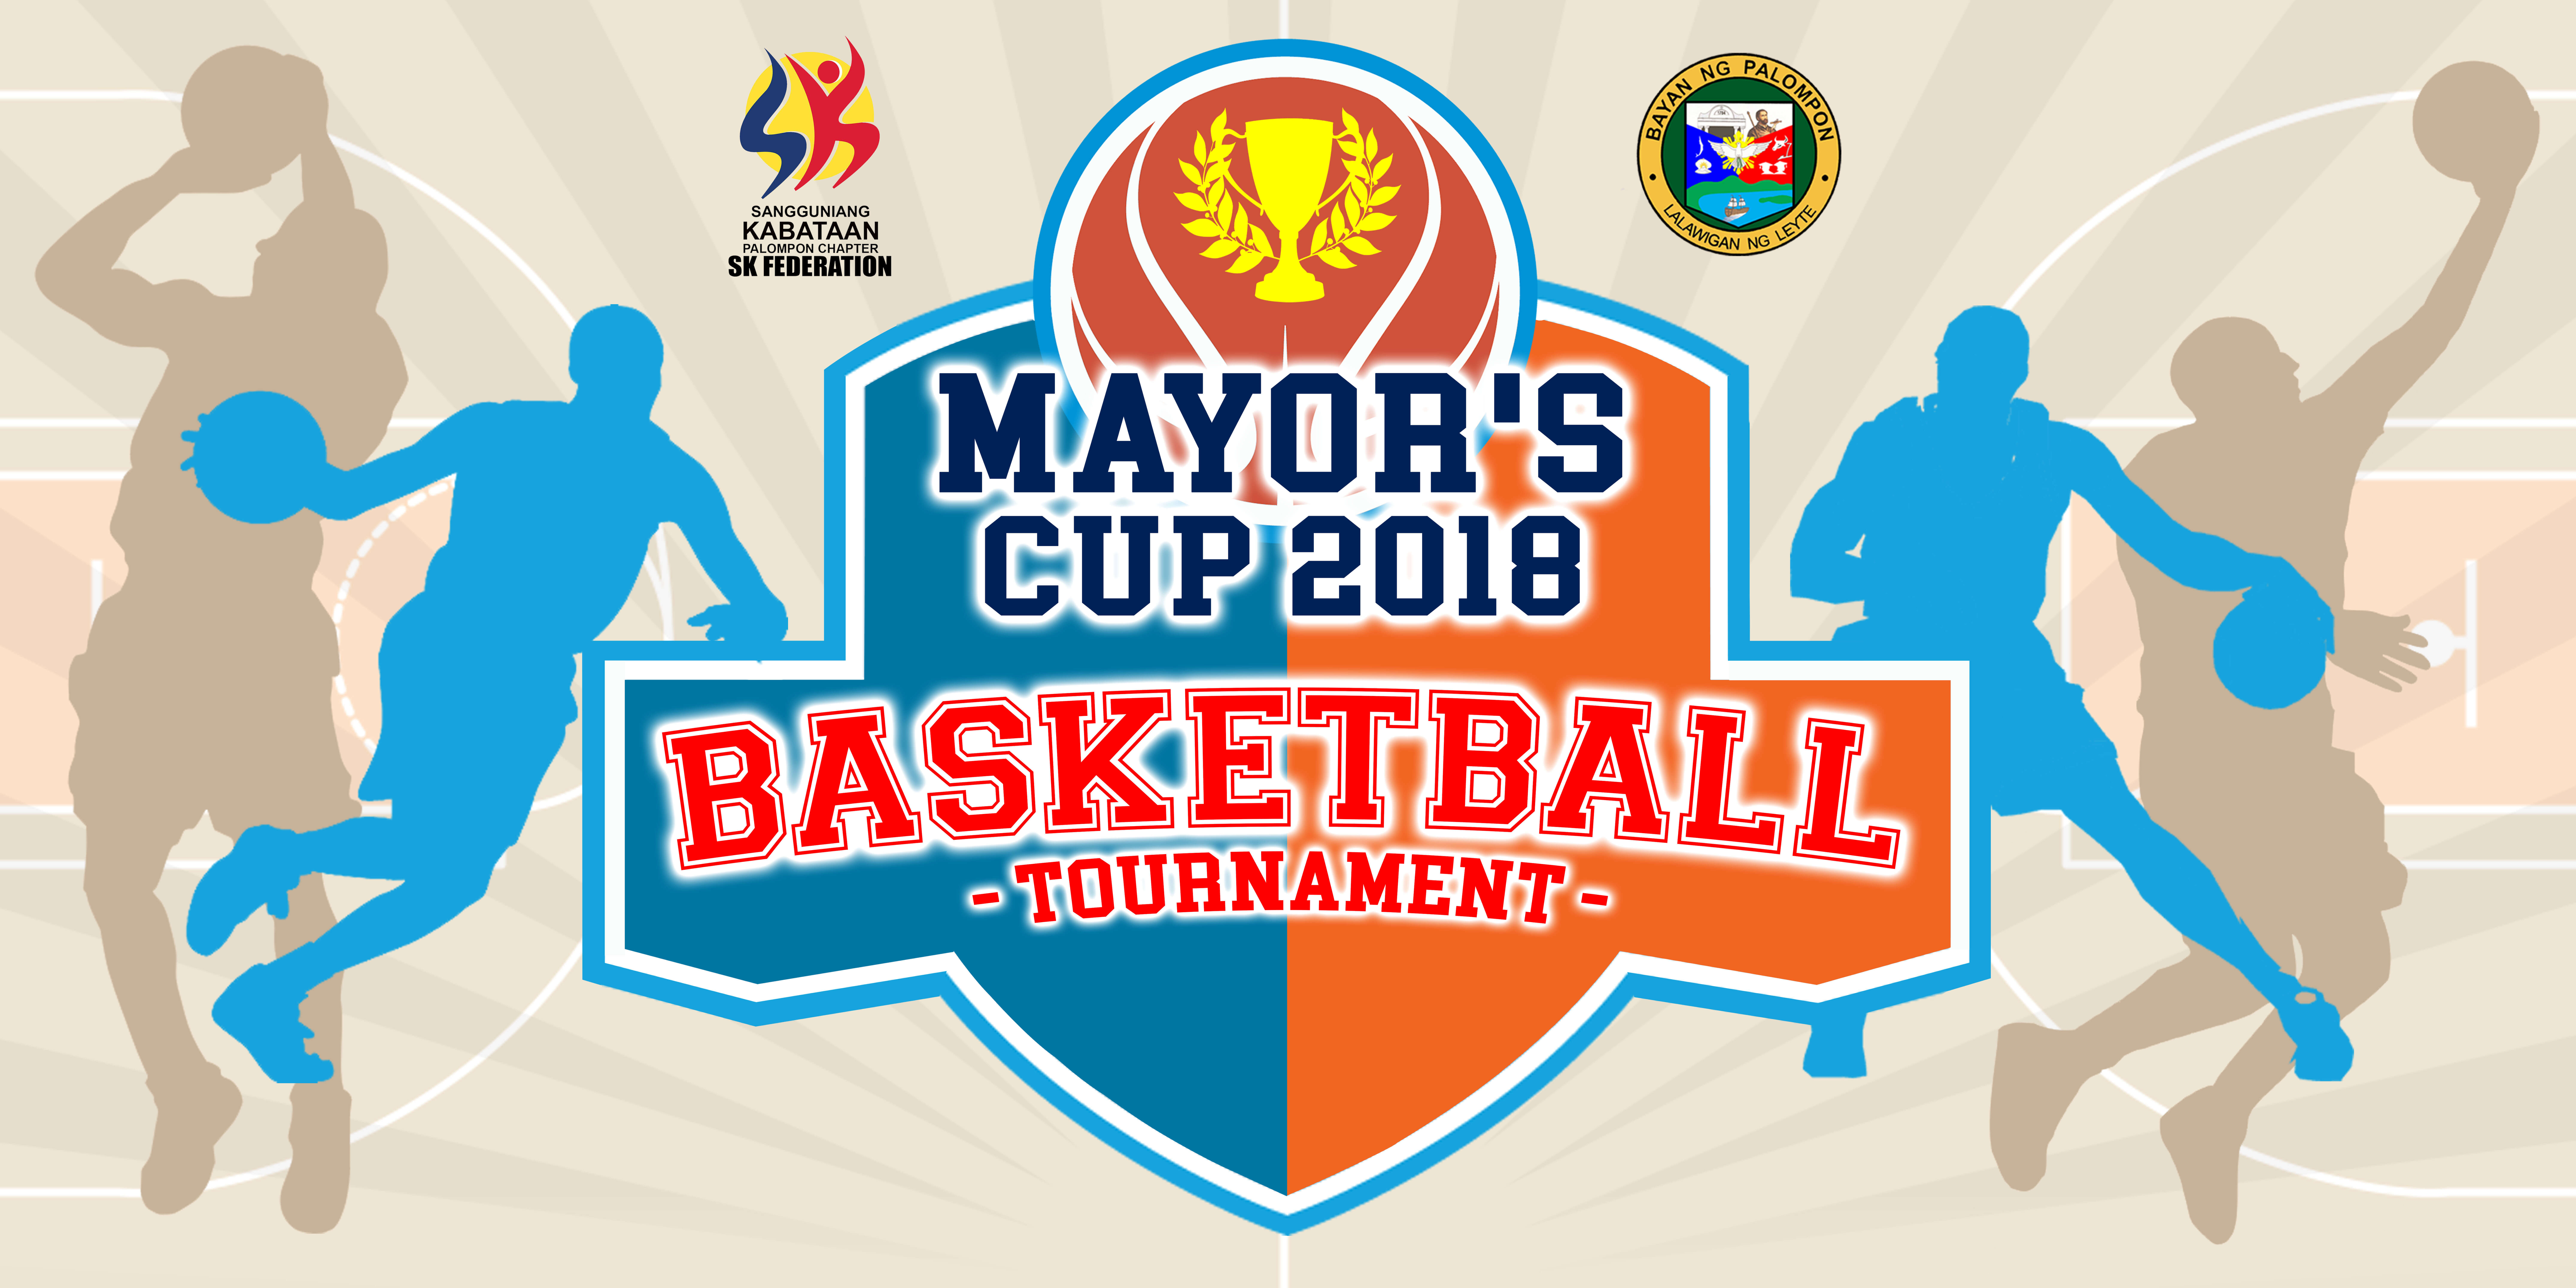 MAYORS CUP 2018 Fighting for Third Place & Best of 3 Series